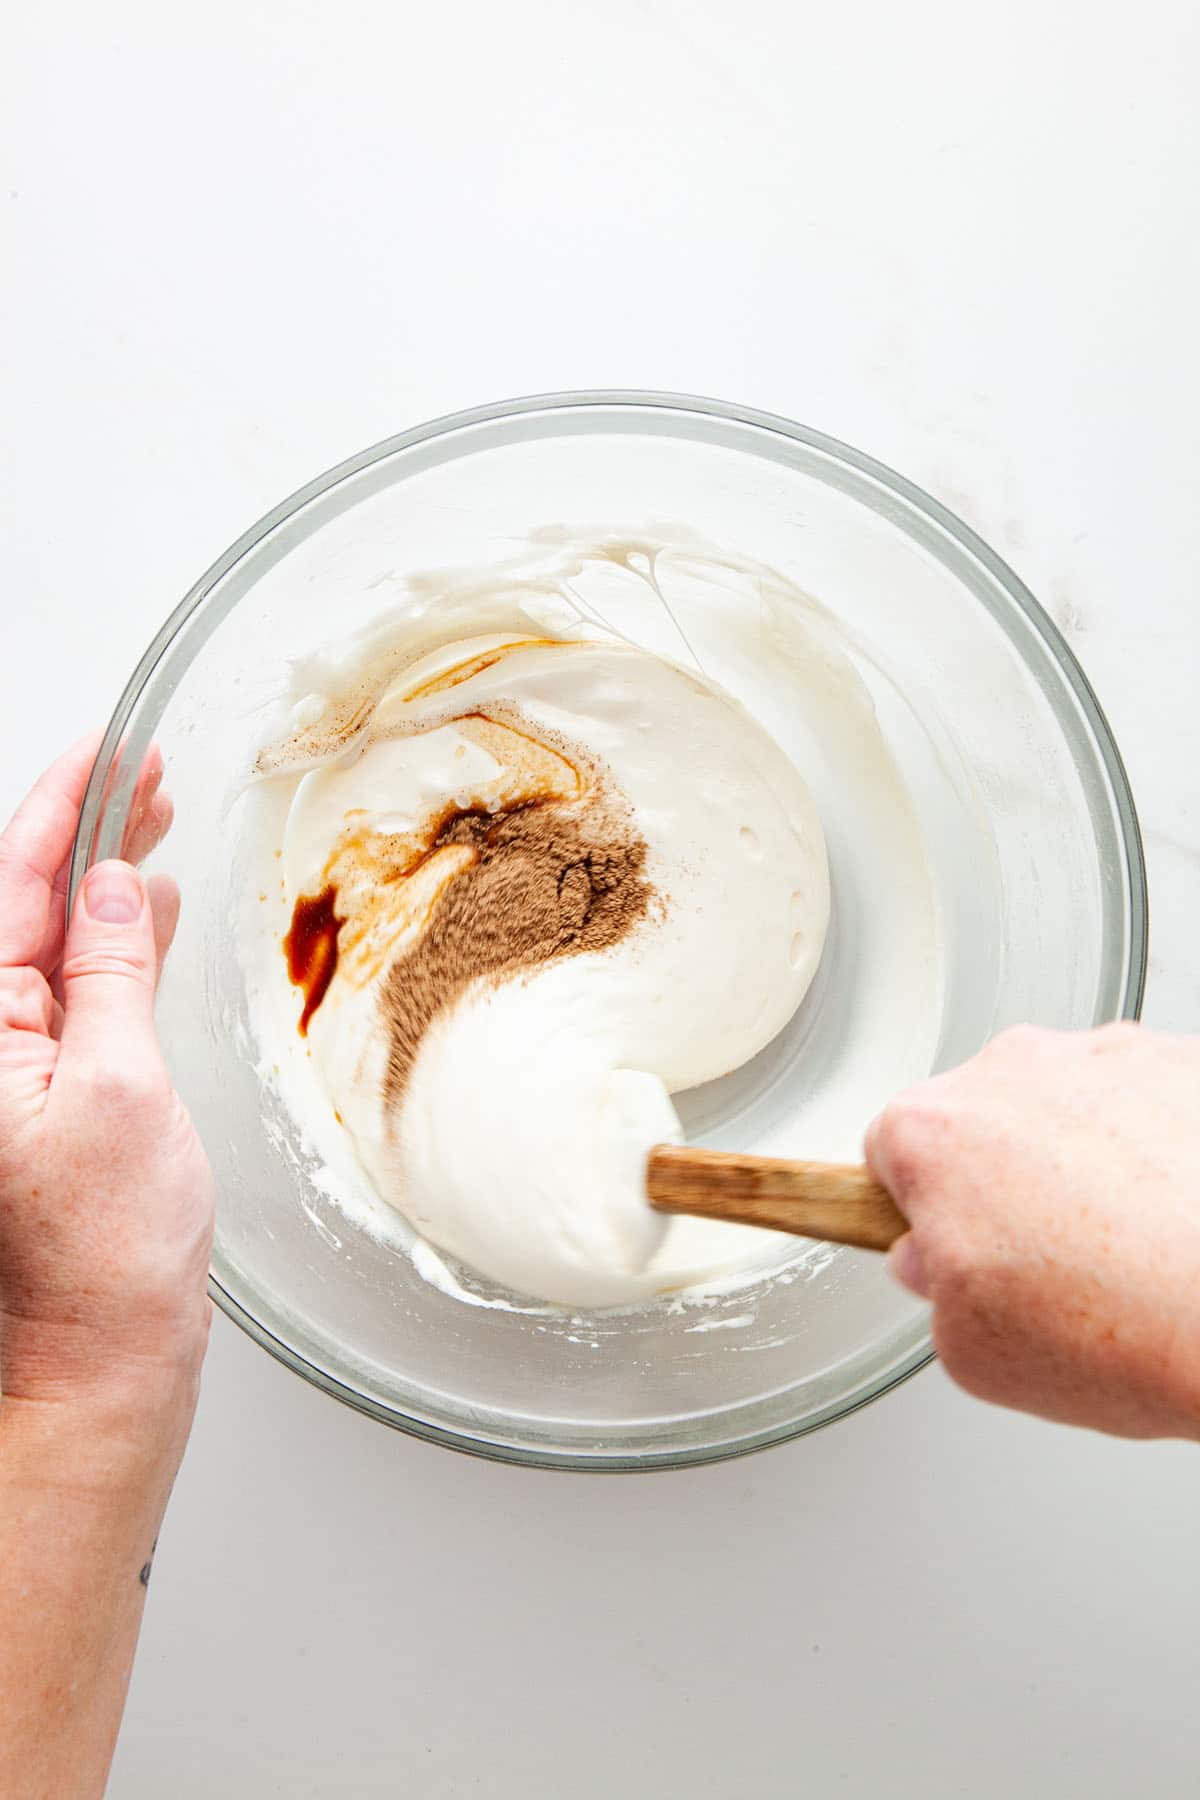 A hand mixing melted marshmallow, spices, and vanilla.